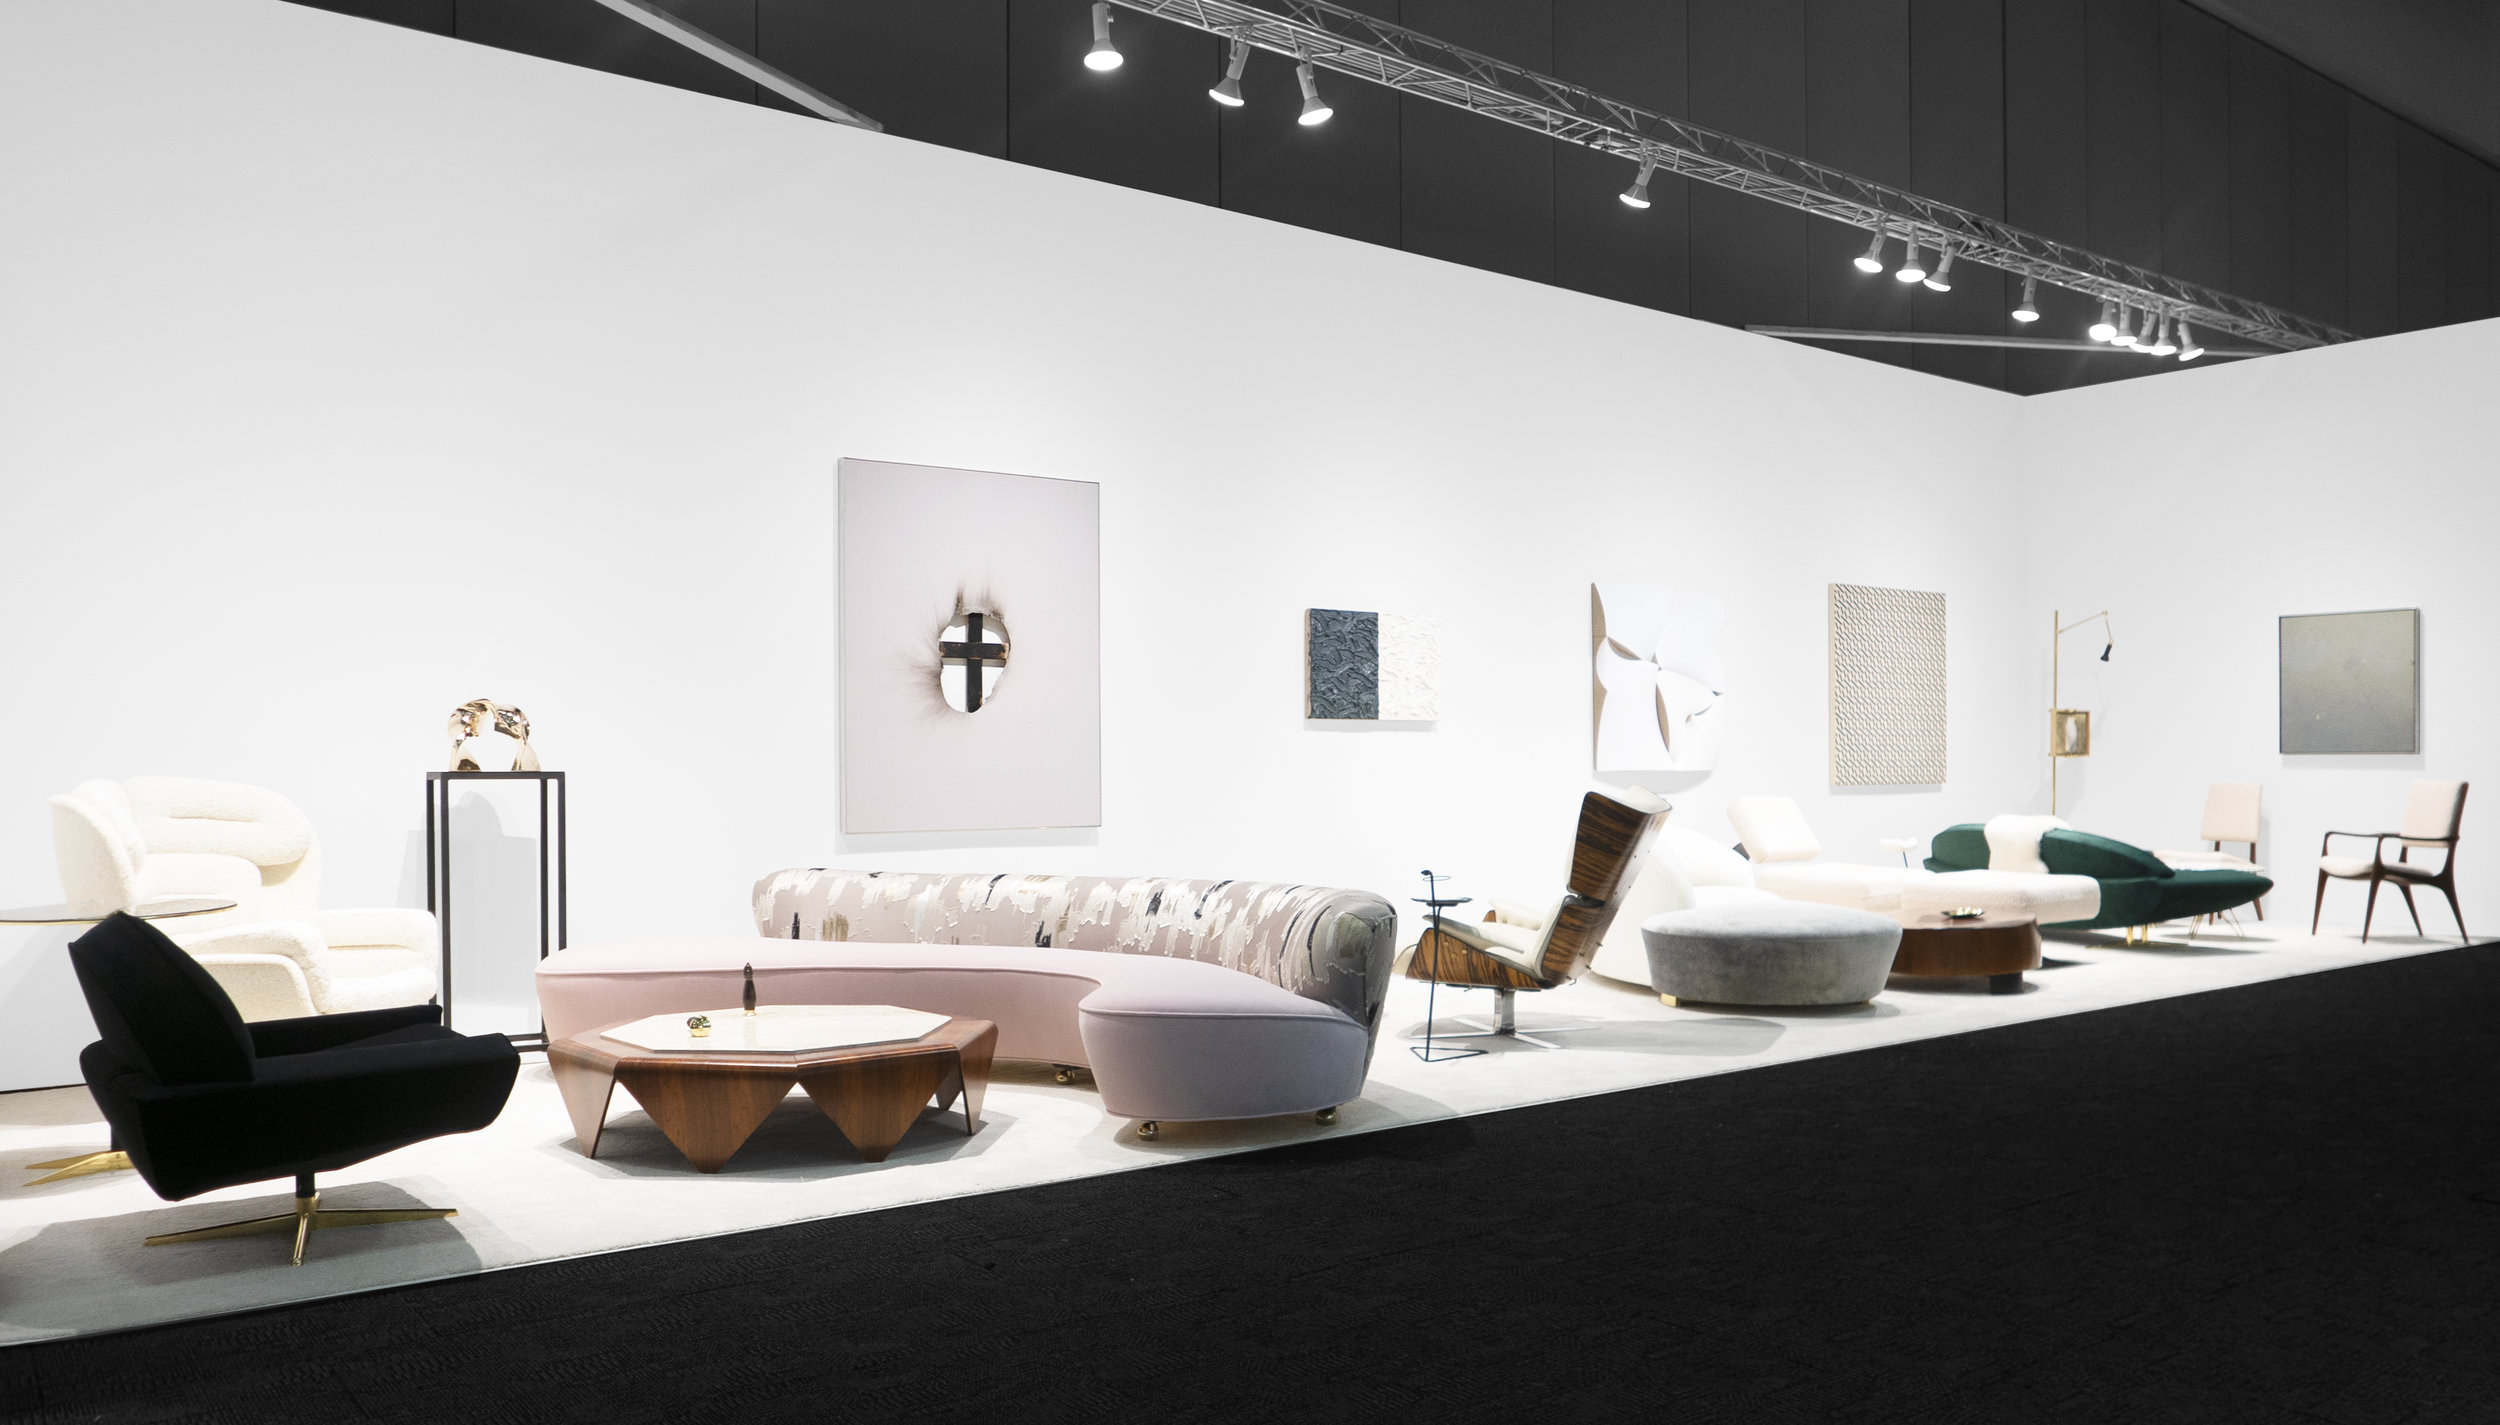 Palm Springs Modernism Show Spring Edition 2019_Peter Blake Gallery_Installation View_1.jpg